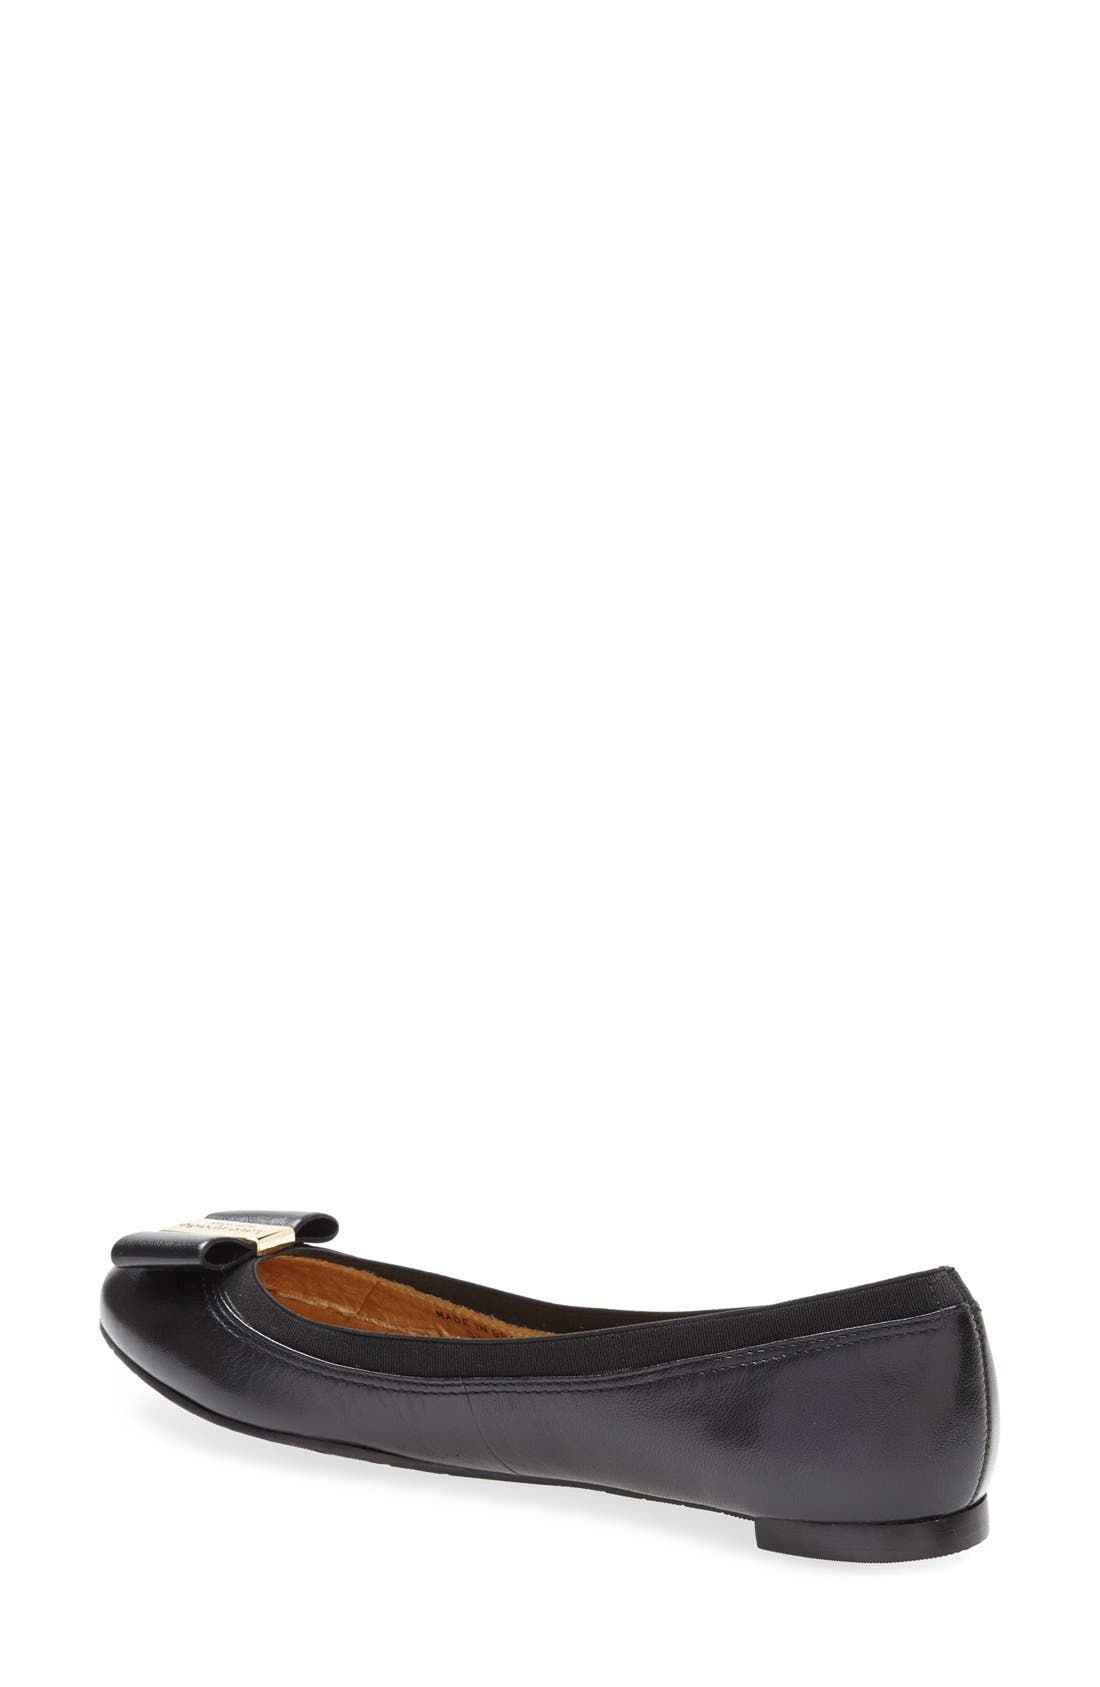 Alternate Image 2  - kate spade new york 'tock' flat